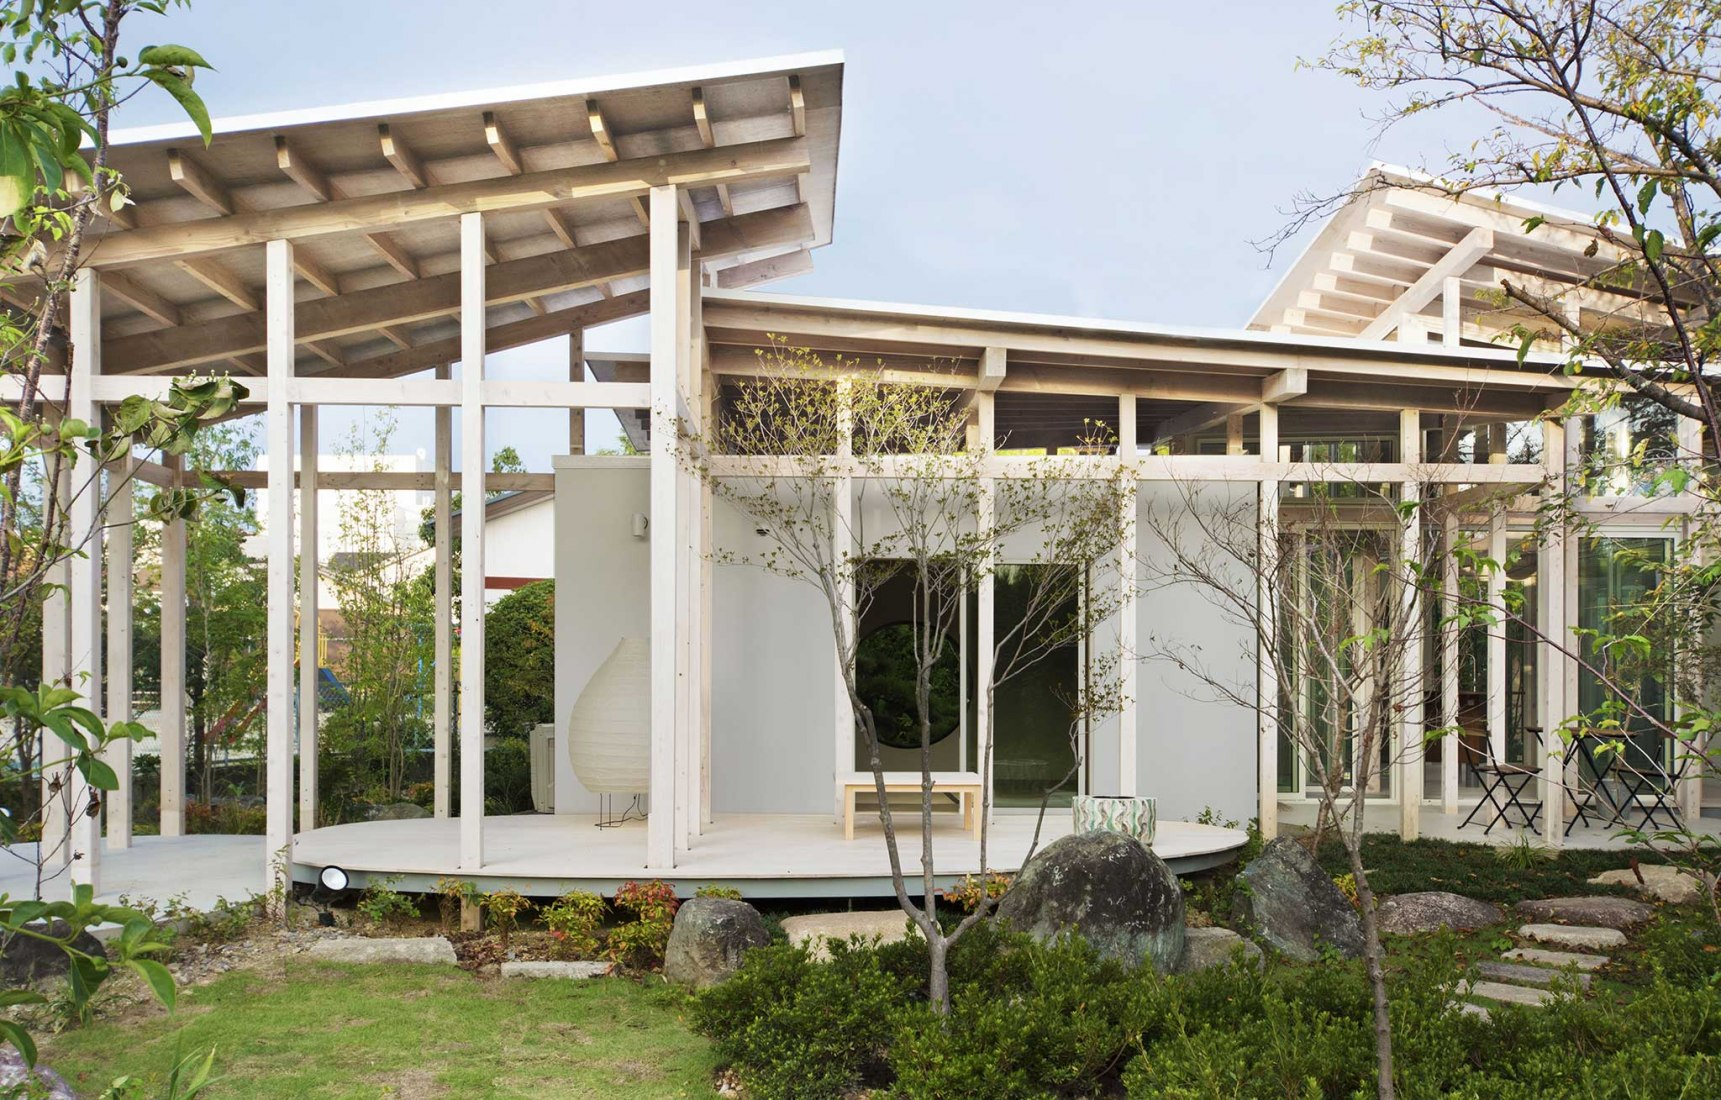 House surrounded by the hedges by Studio Velocity. Photograph by Studio Velocity